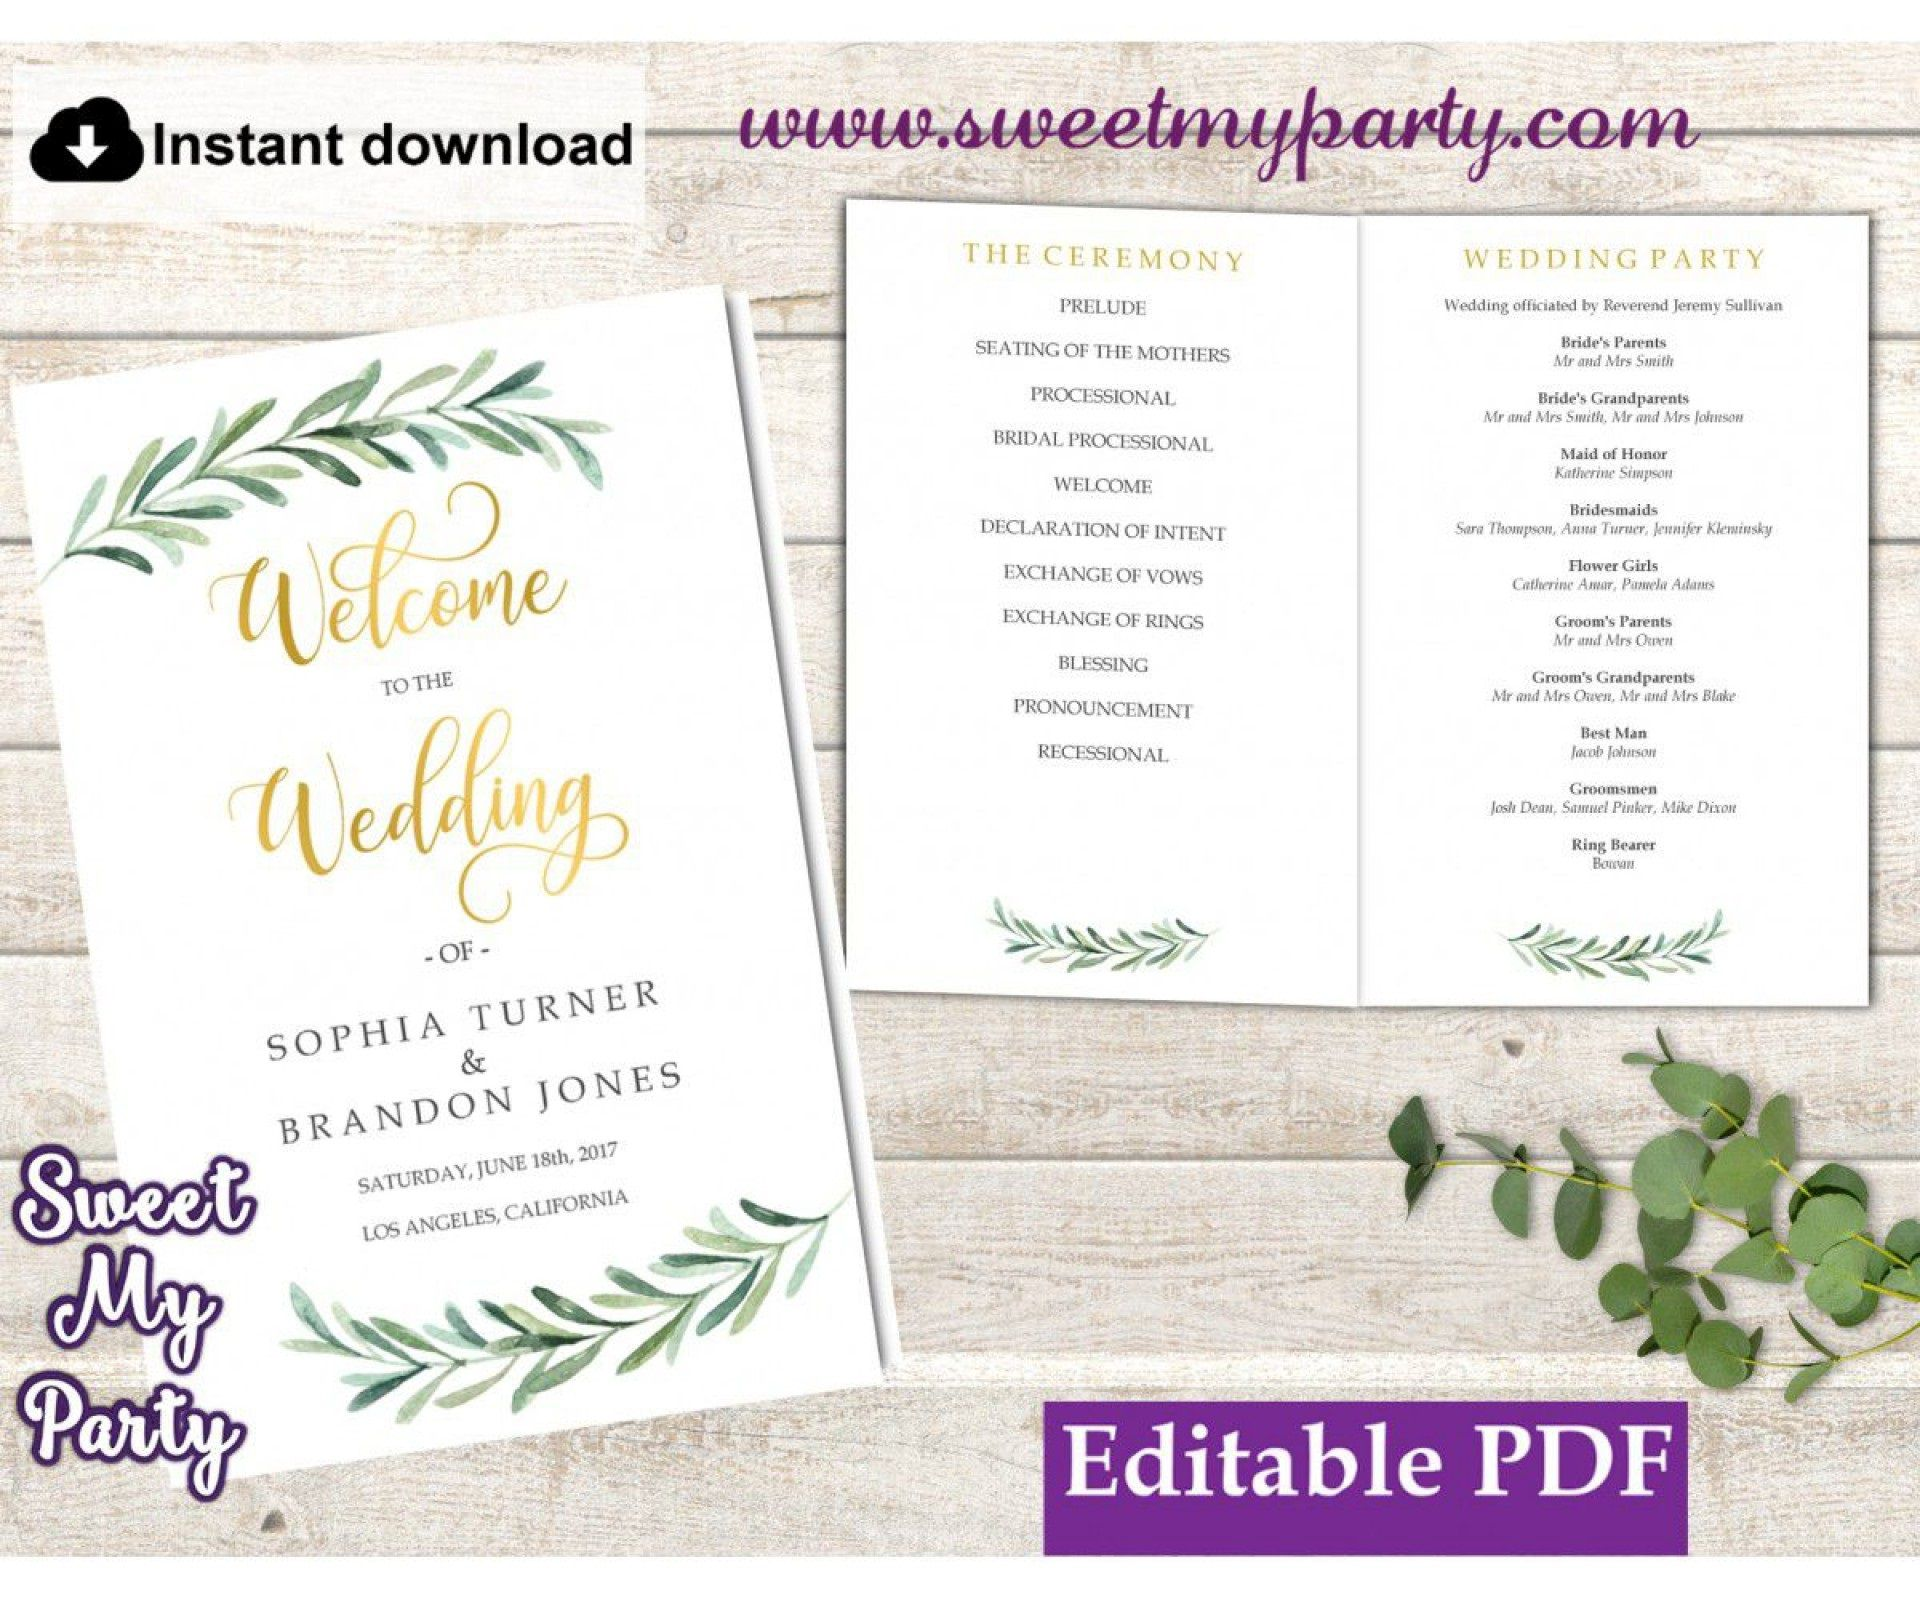 008 Excellent Wedding Order Of Service Template Word Picture  Free MicrosoftFull